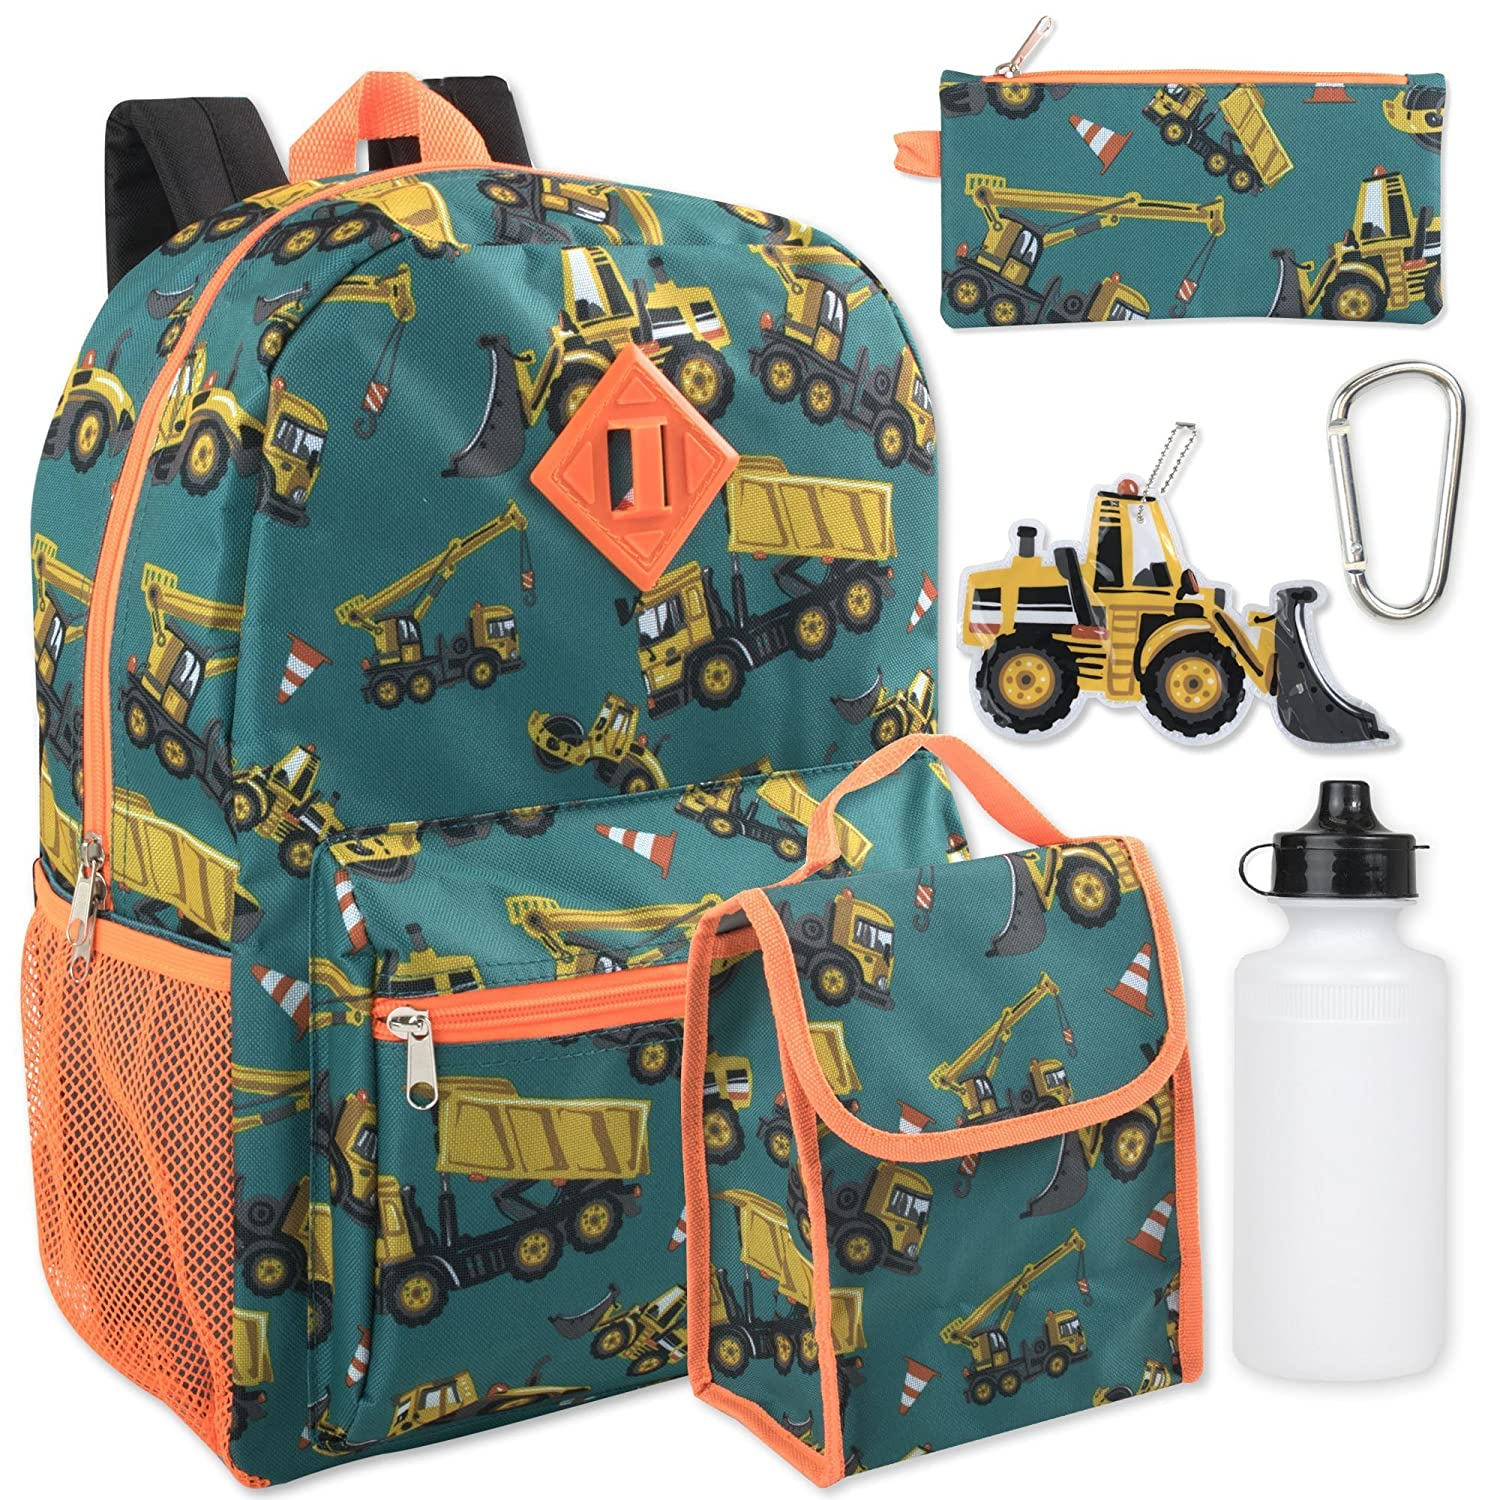 Boy's 6 in 1 Backpack Set With Lunch Bag, Pencil Case, Bottle, Keychain, Clip Clip (Trucks)